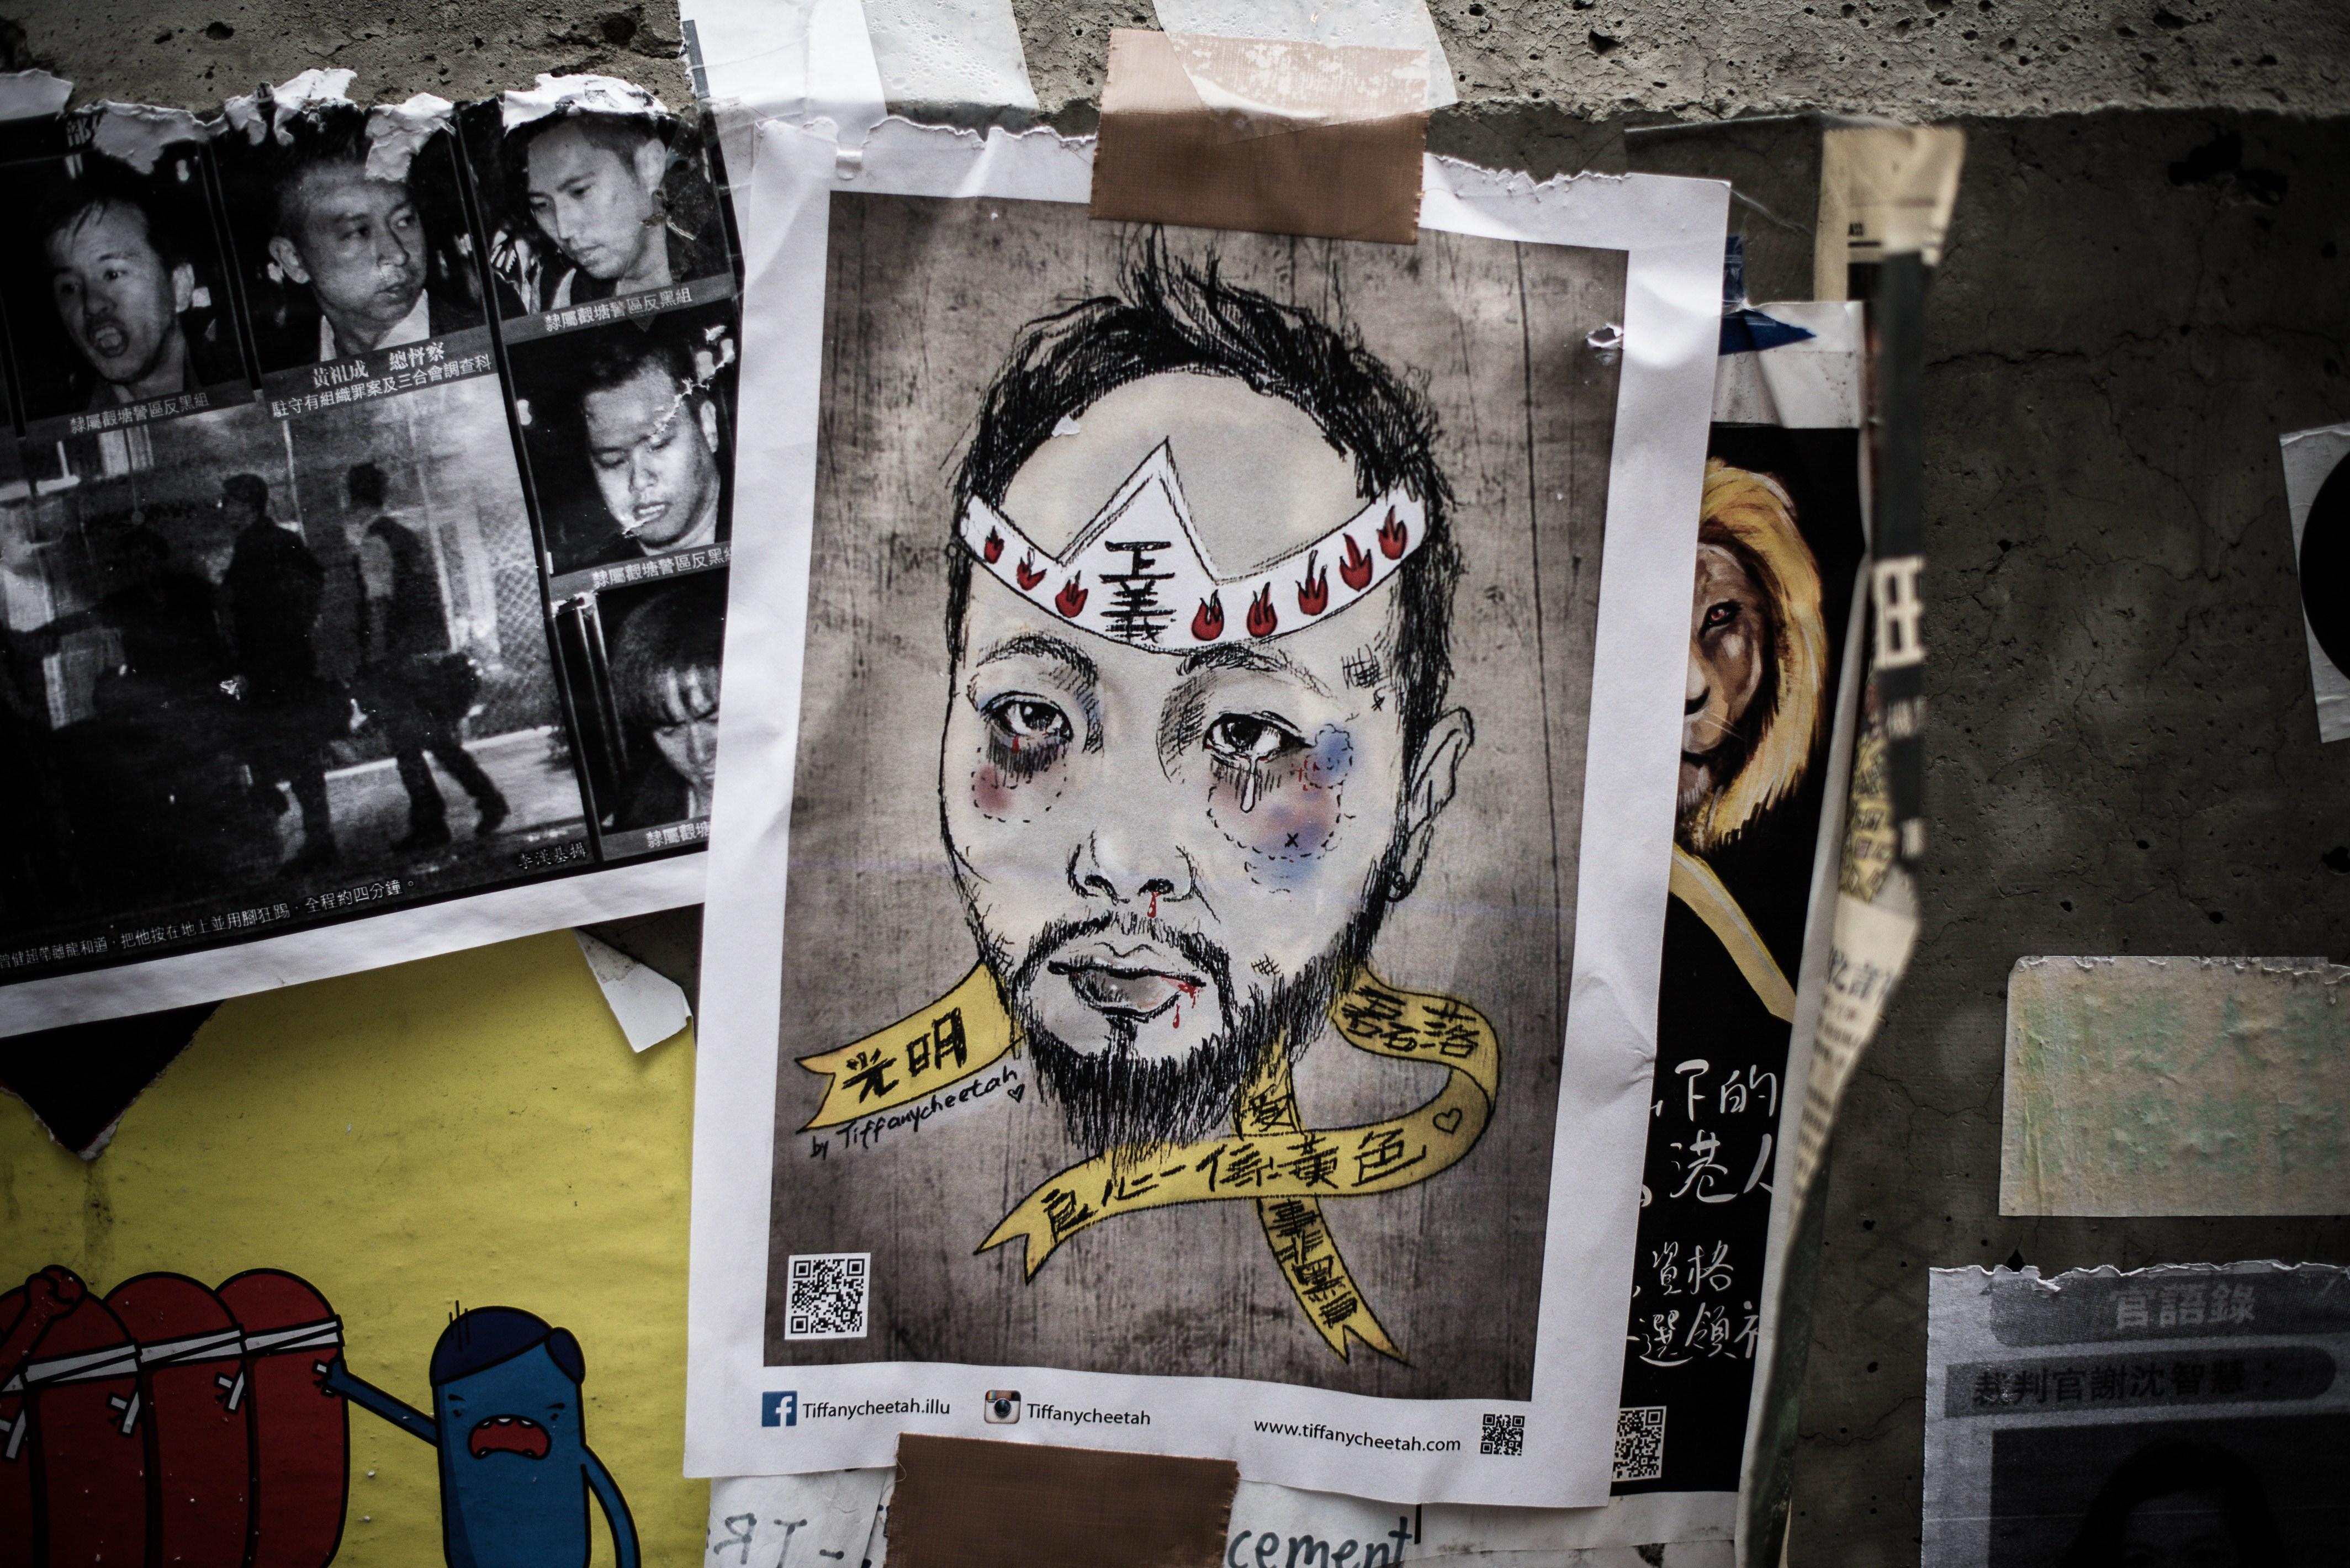 Hong Kong: Protests Planned After Teen Girl Is Placed in Children's Home